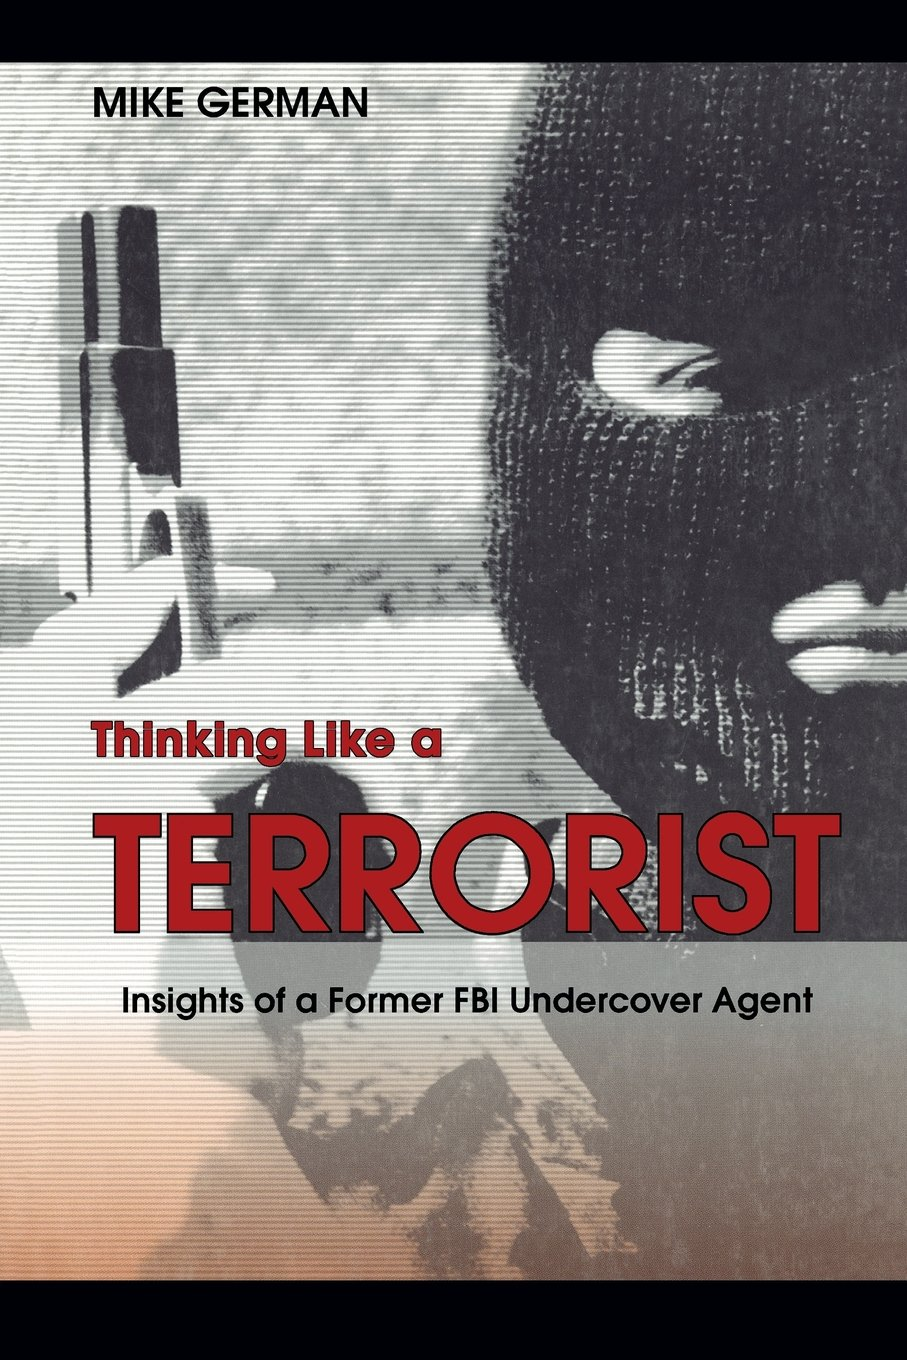 thinking-like-a-terrorist-insights-of-a-former-fbi-undercover-agent